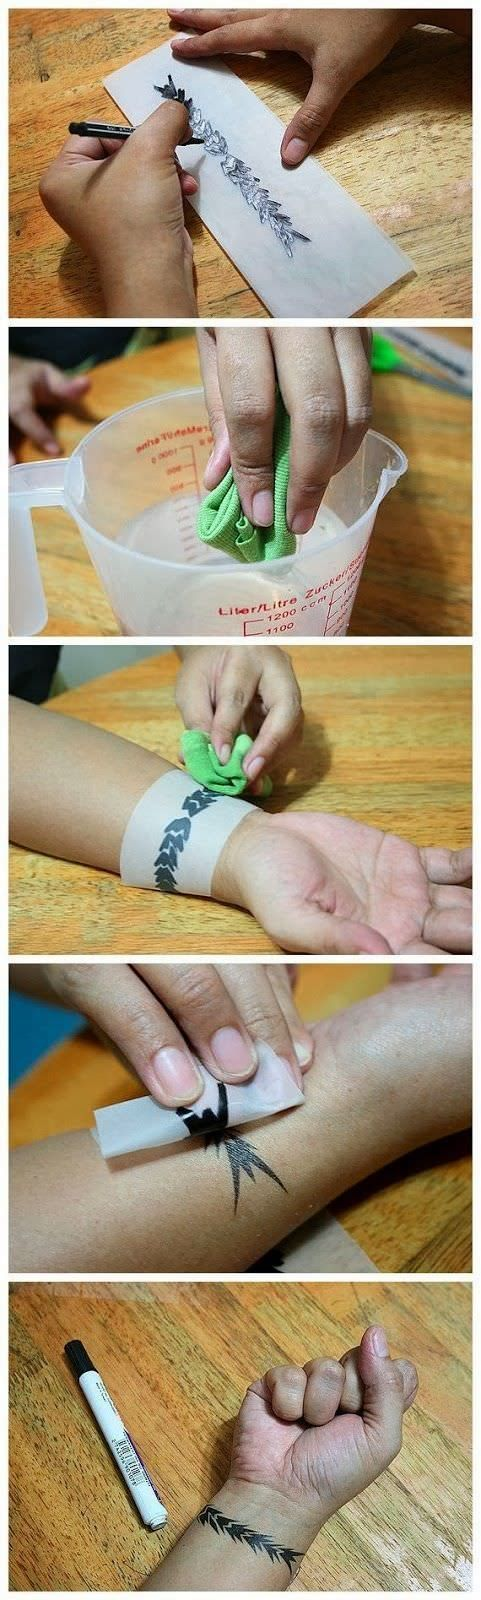 How To Get A Temporary Tattoo At Home Diy Temporary Tattoos Diy Tattoo Temporary Tattoos